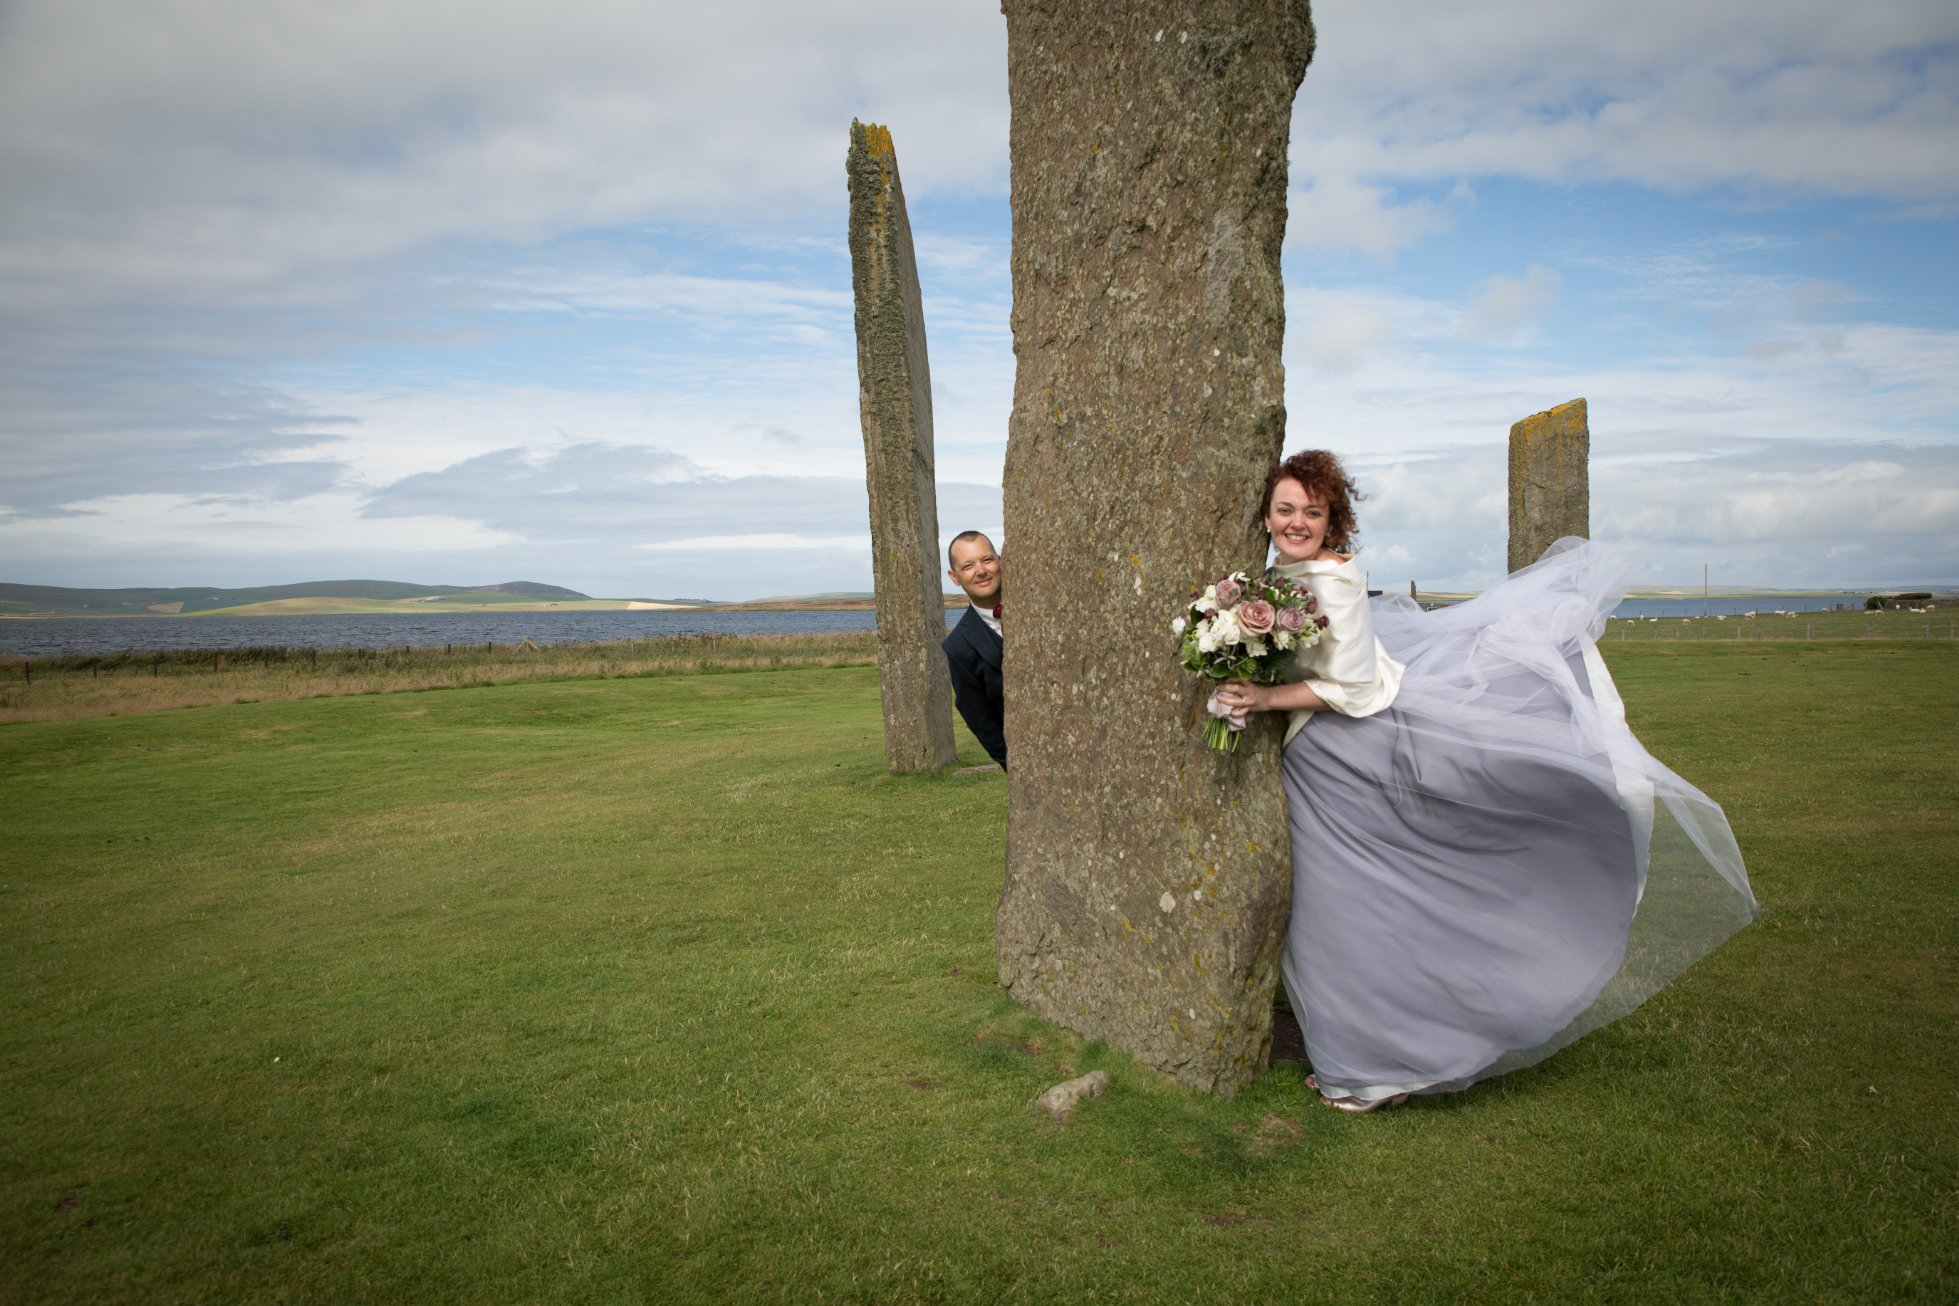 Brian and his wife Krisztina after their marriage ceremony at the Standing Stones of Stenness in Orkney